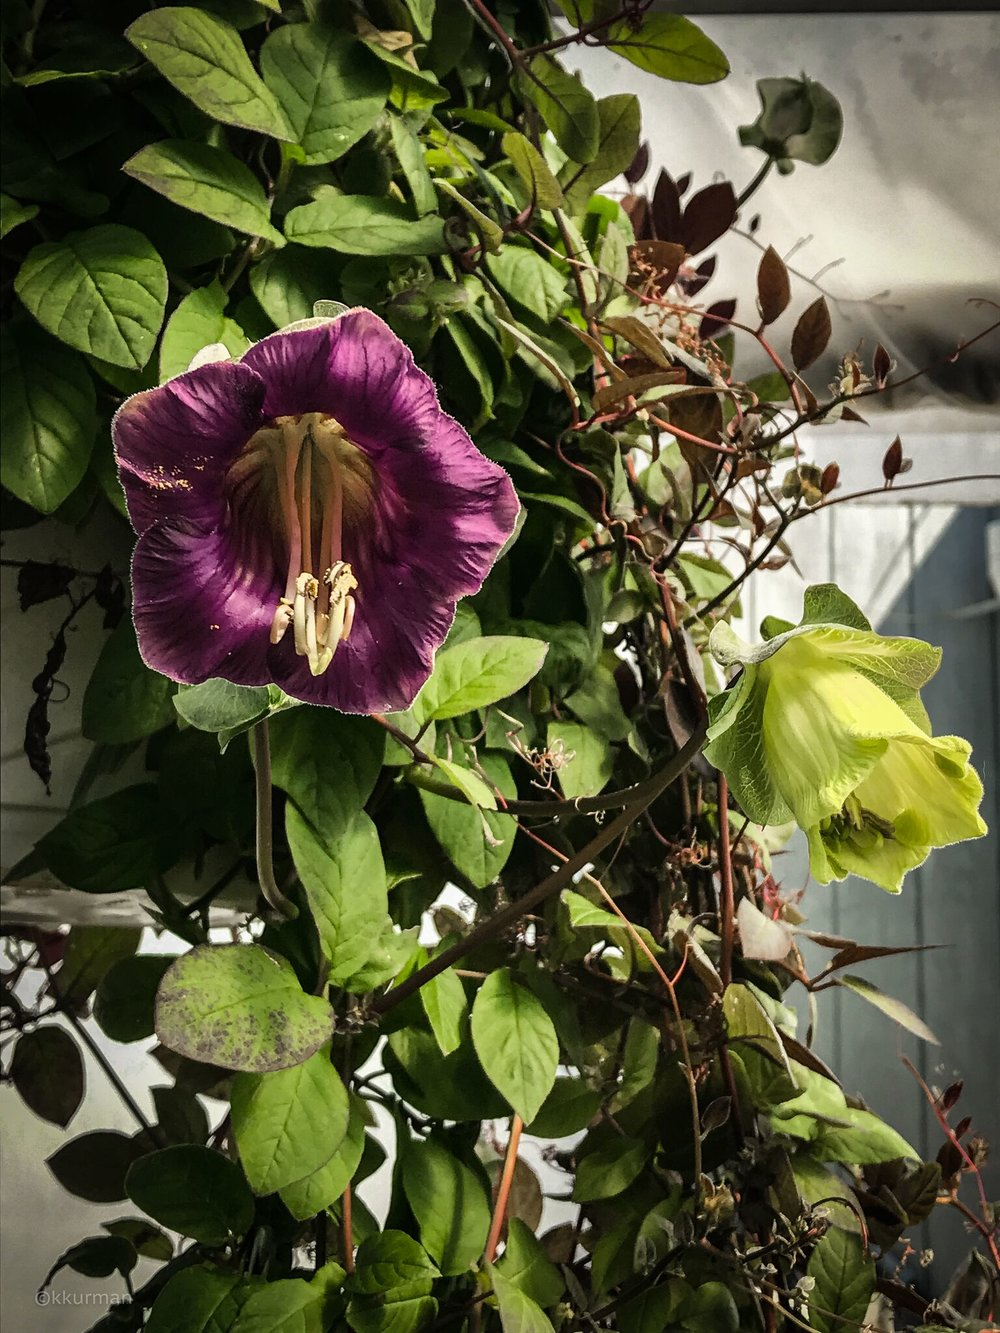 Some of the wonderful late season plants; Cobea scandens in hanging baskets